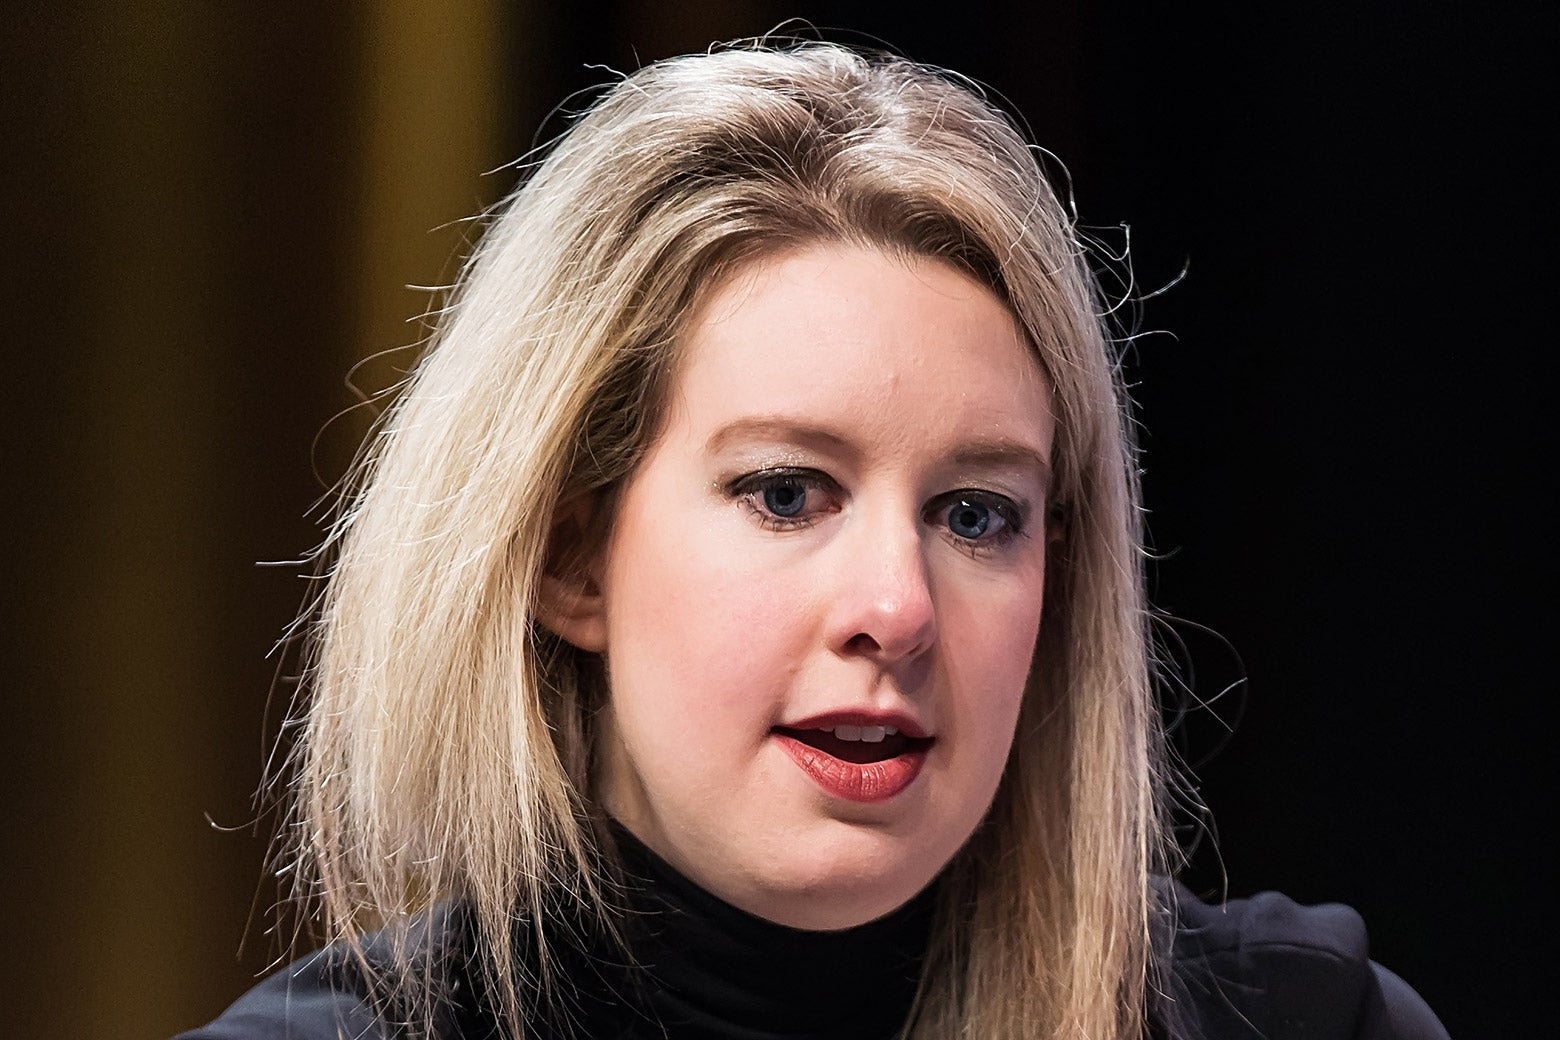 Elizabeth Holmes attends the Forbes Under 30 Summit on Oct. 5, 2015, in Philadelphia.